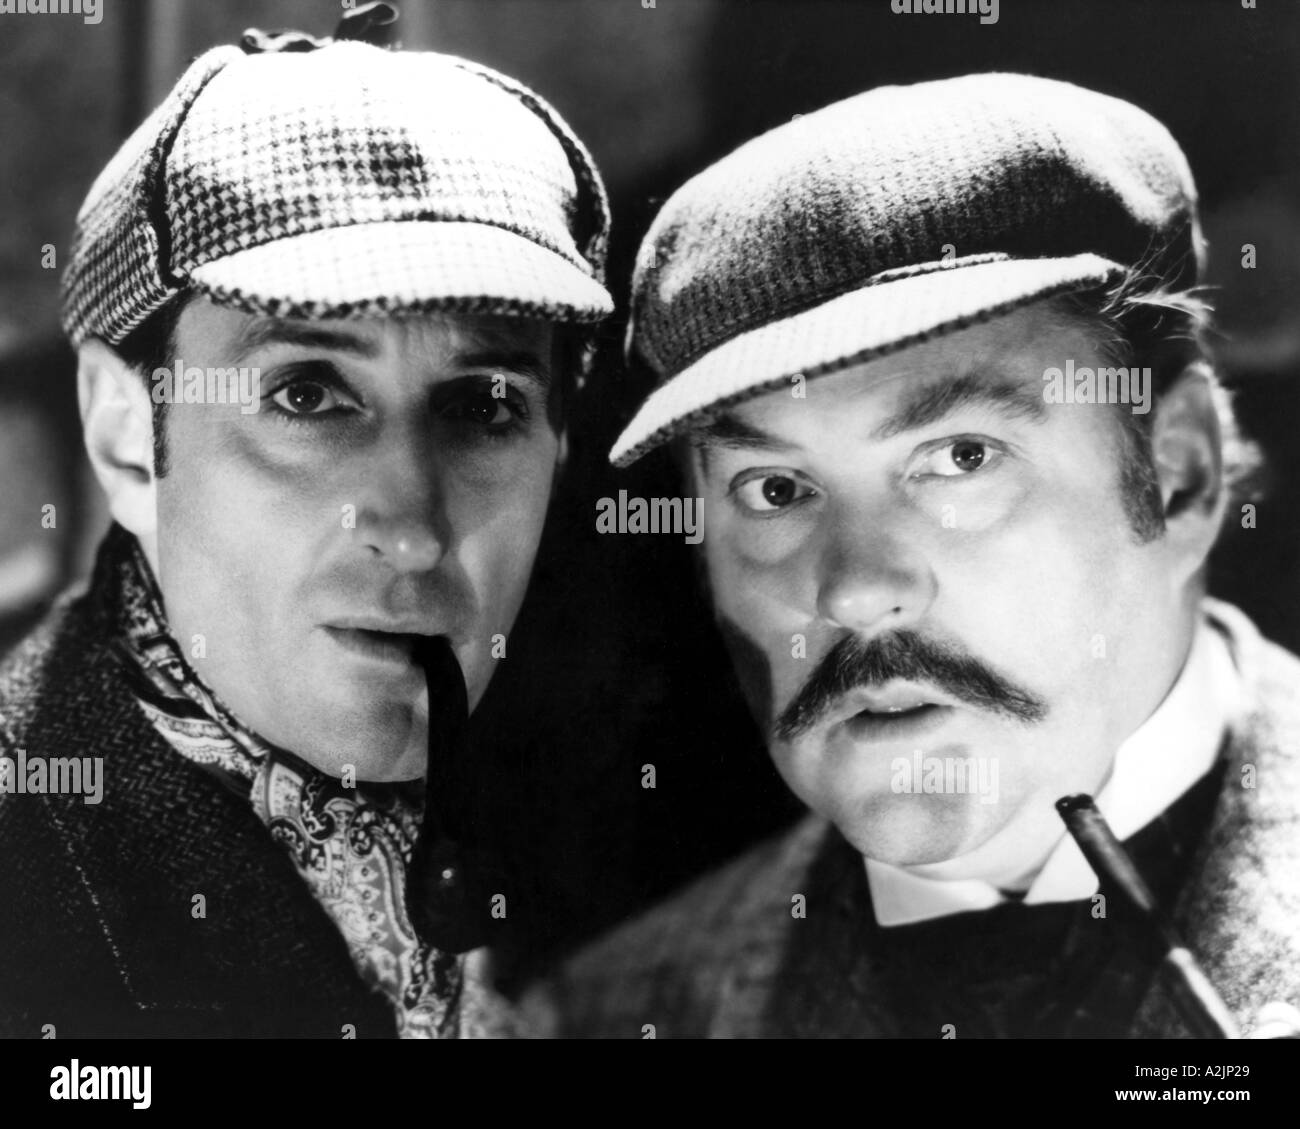 SHERLOCK HOLMES 1944 film with Nigel Bruce at left as Holmes and Basil Rathbone as Dr Watson - Stock Image